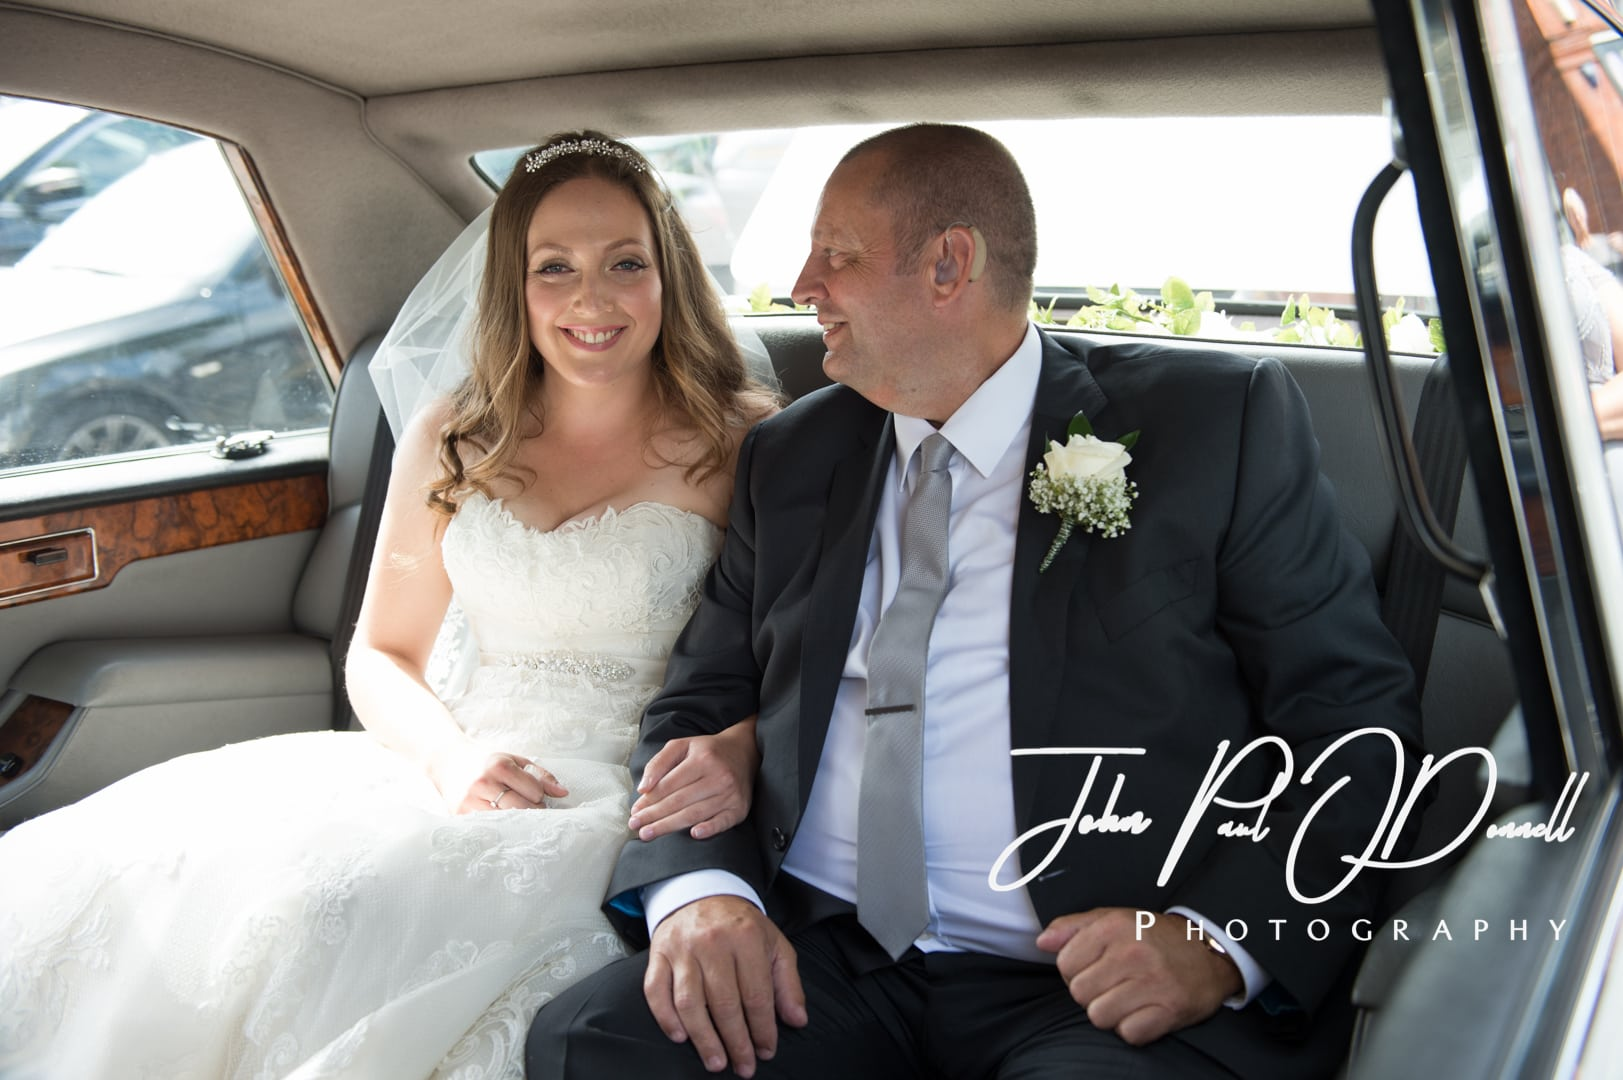 Marie and Johns wedding at The Hertfordshire Golf Club & Country Club